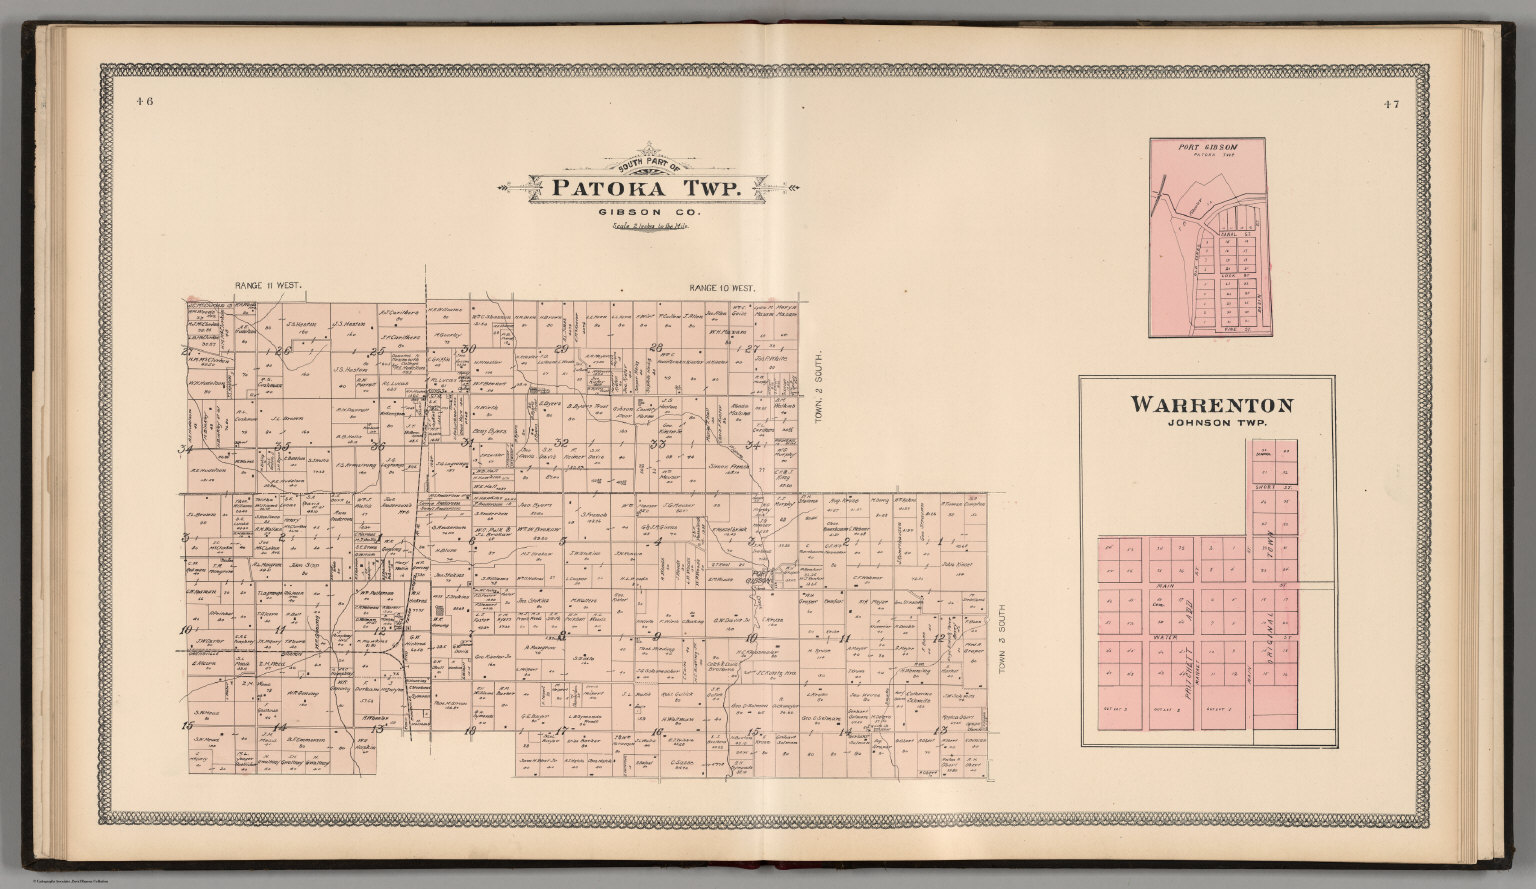 Gibson County Indiana Map.South Part Of Patoka Township Gibson County Indiana Warrenton